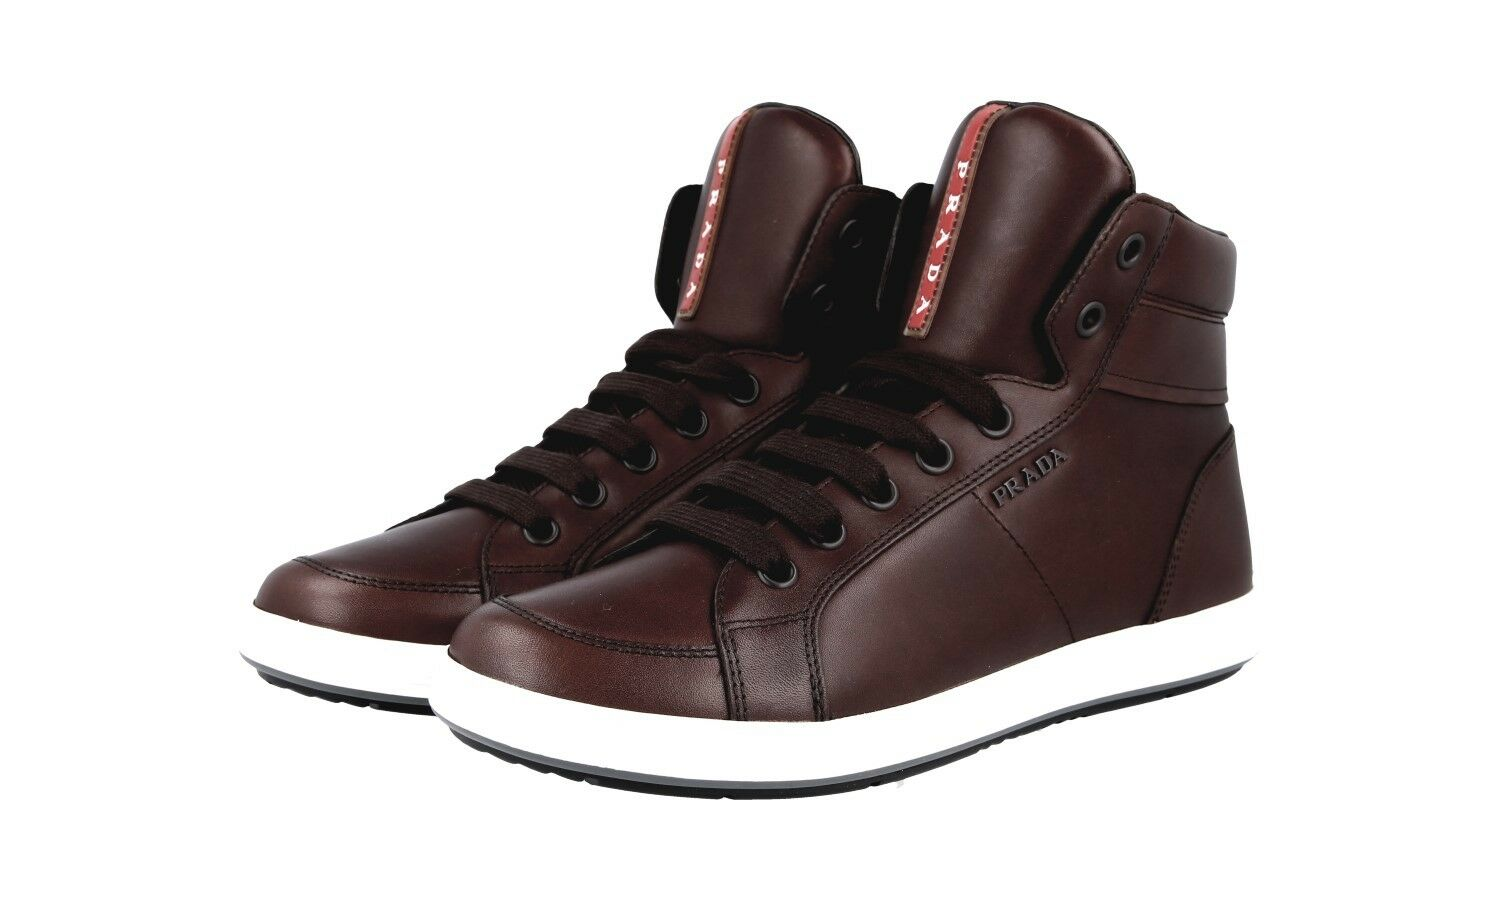 LUXUS PRADA HIGH TOP SNEAKER SCHUHE 4T2842 brown NEU NEW 9,5 43,5 44